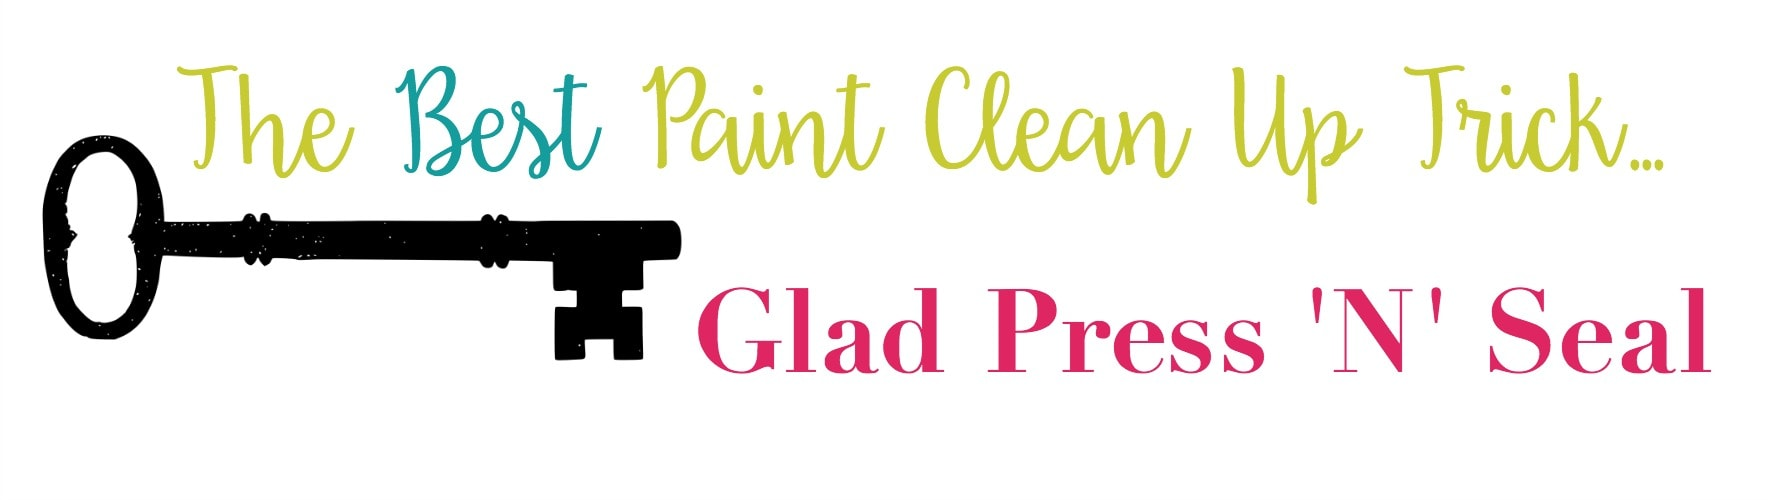 The Best Paint Clean Up Trick Glad Press 'N' Seal